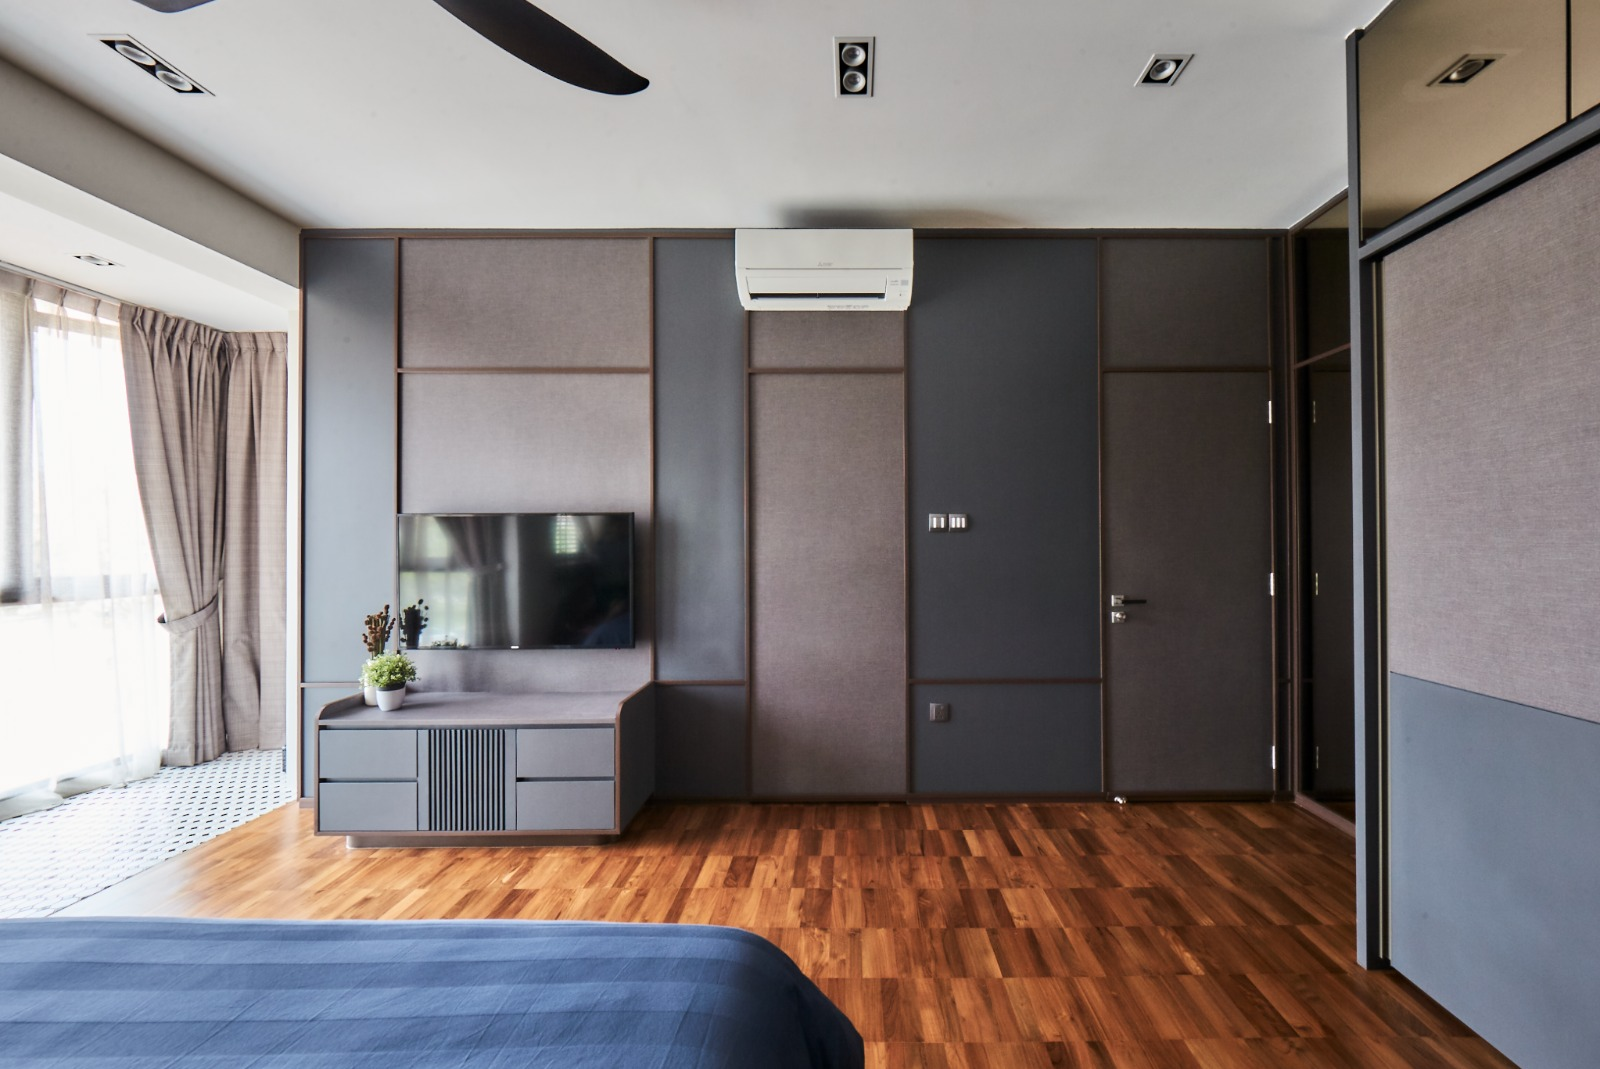 squarerooms richfield integrated home landed house renovation makeover modern contemporary neutral monochromatic design hardwood floors bedroom wardrobe feature wall